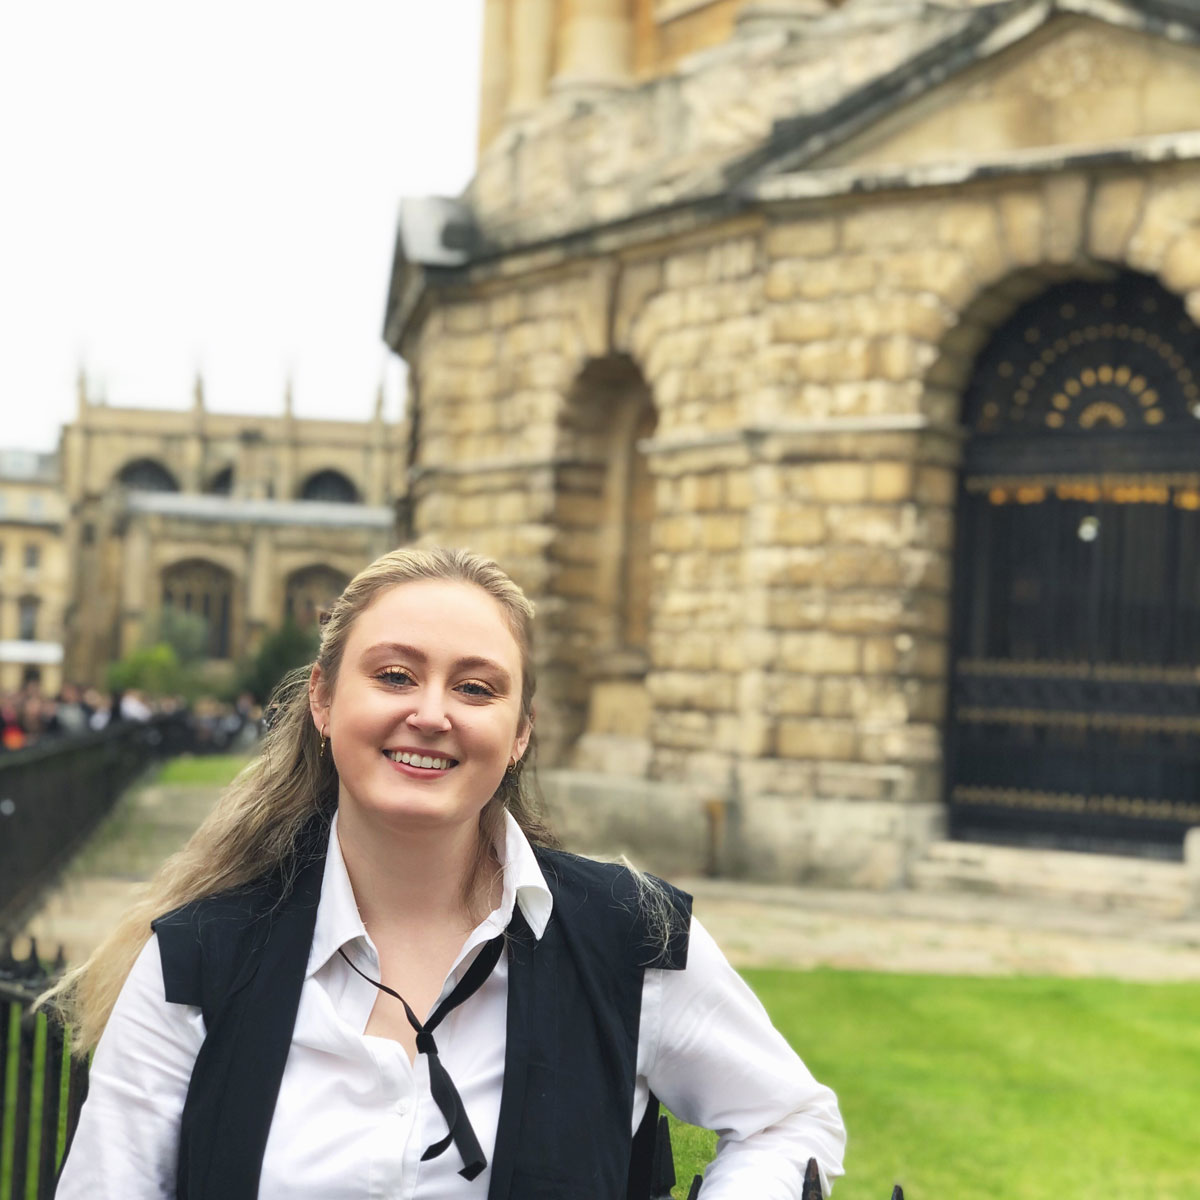 Emily Gough in sub fusc on matriculation day standing outside the Radcliffe Camera